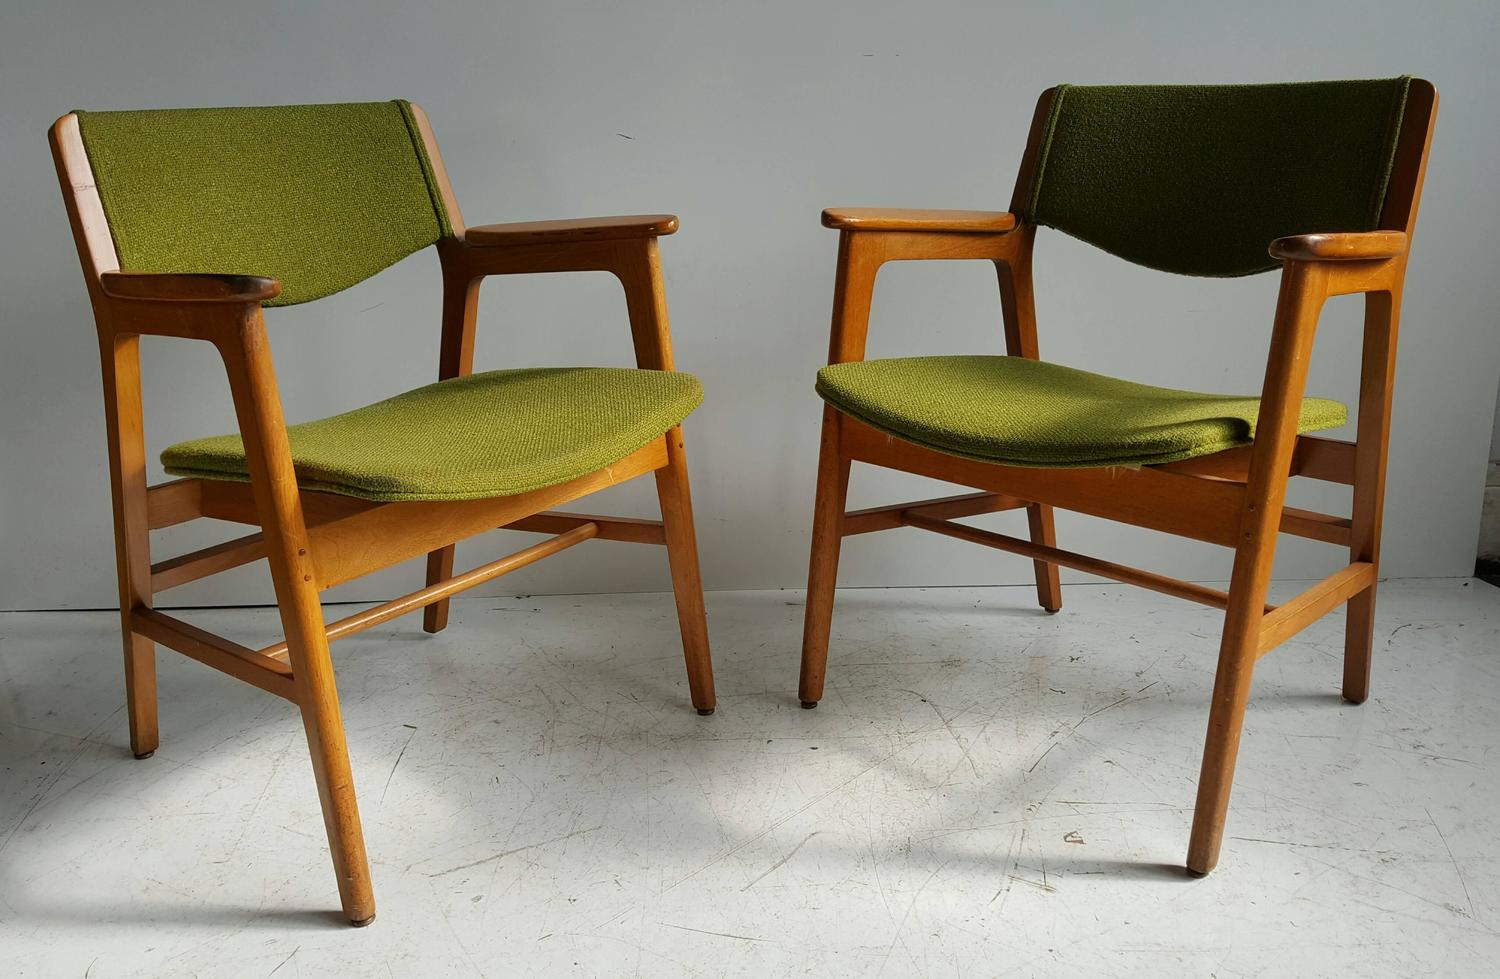 Green Suede Leather Swiveling Office Chair on Casters by Harter 1970s